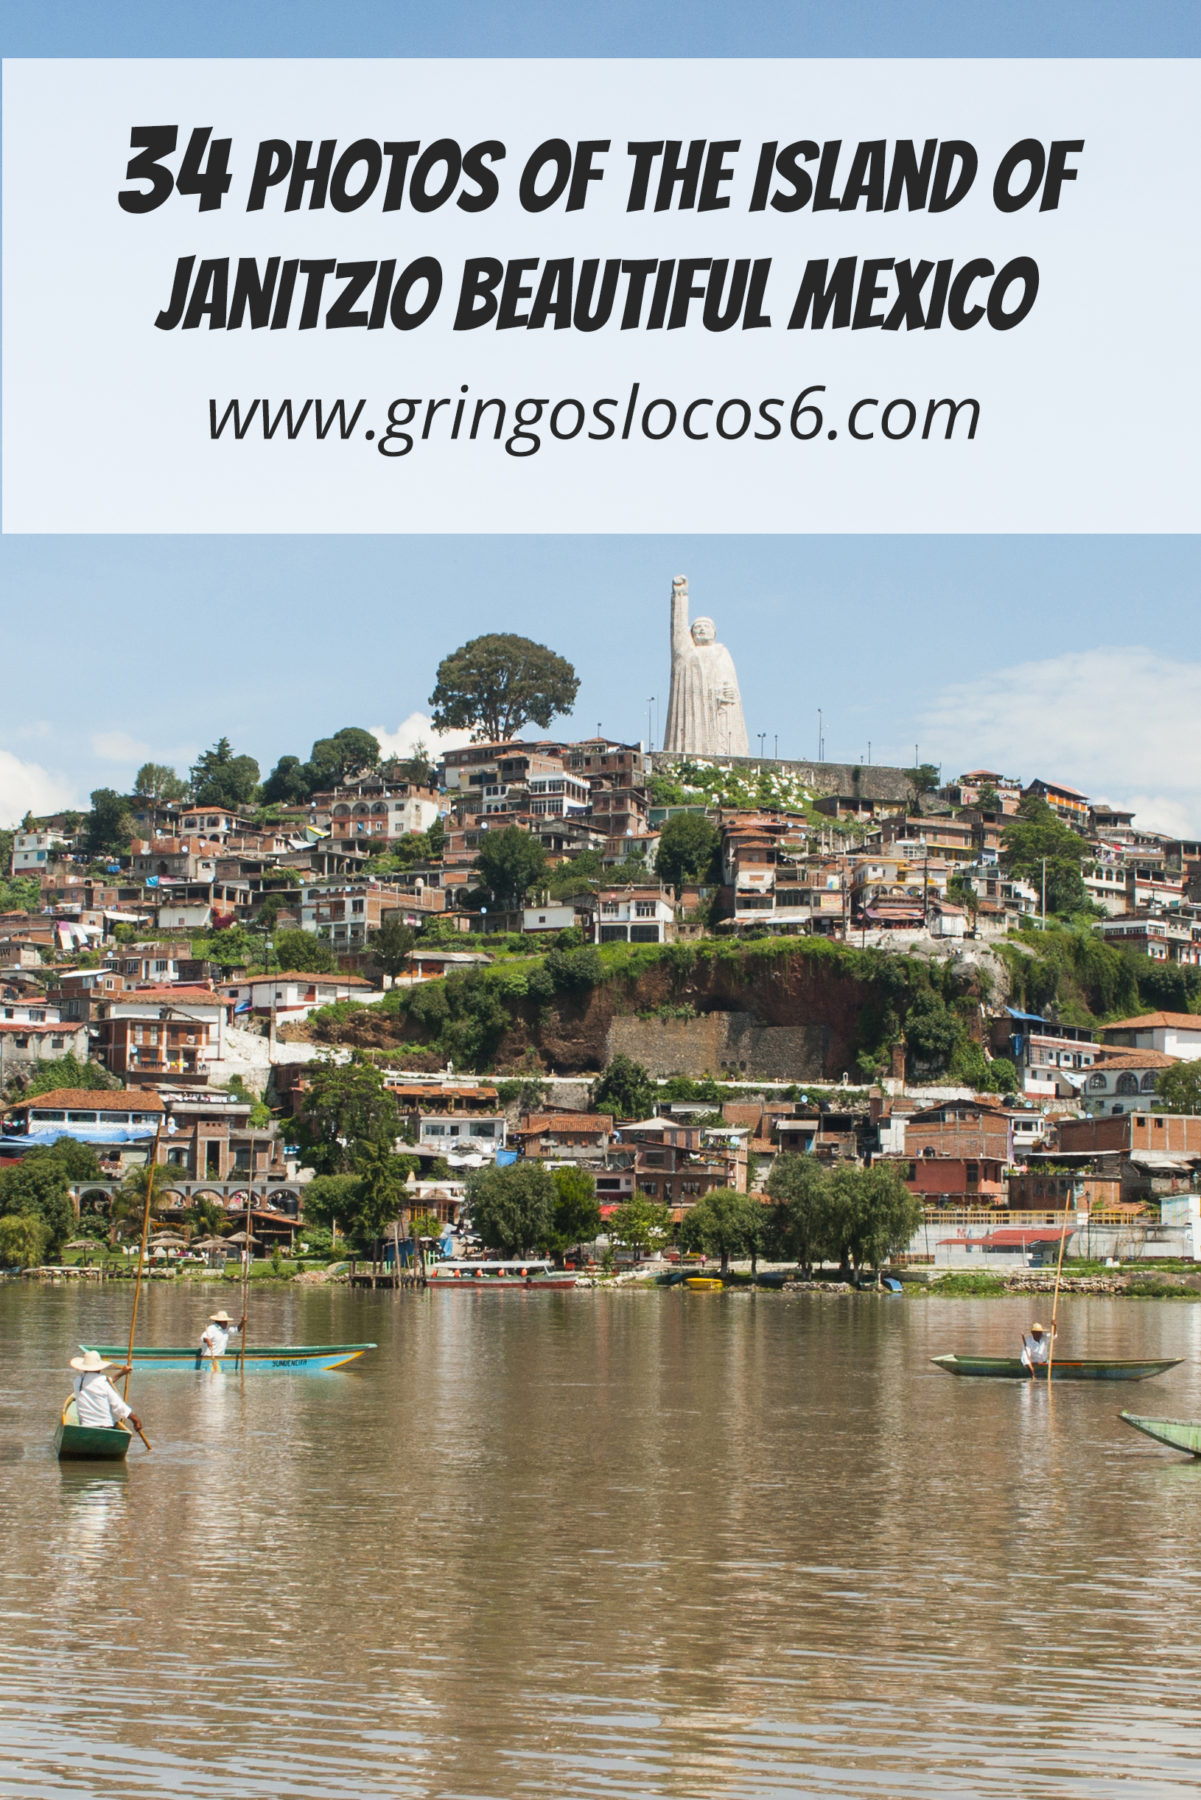 Janitzio is a beautiful little island located in Lake Patzcuaro in Michoacan, Mexico.